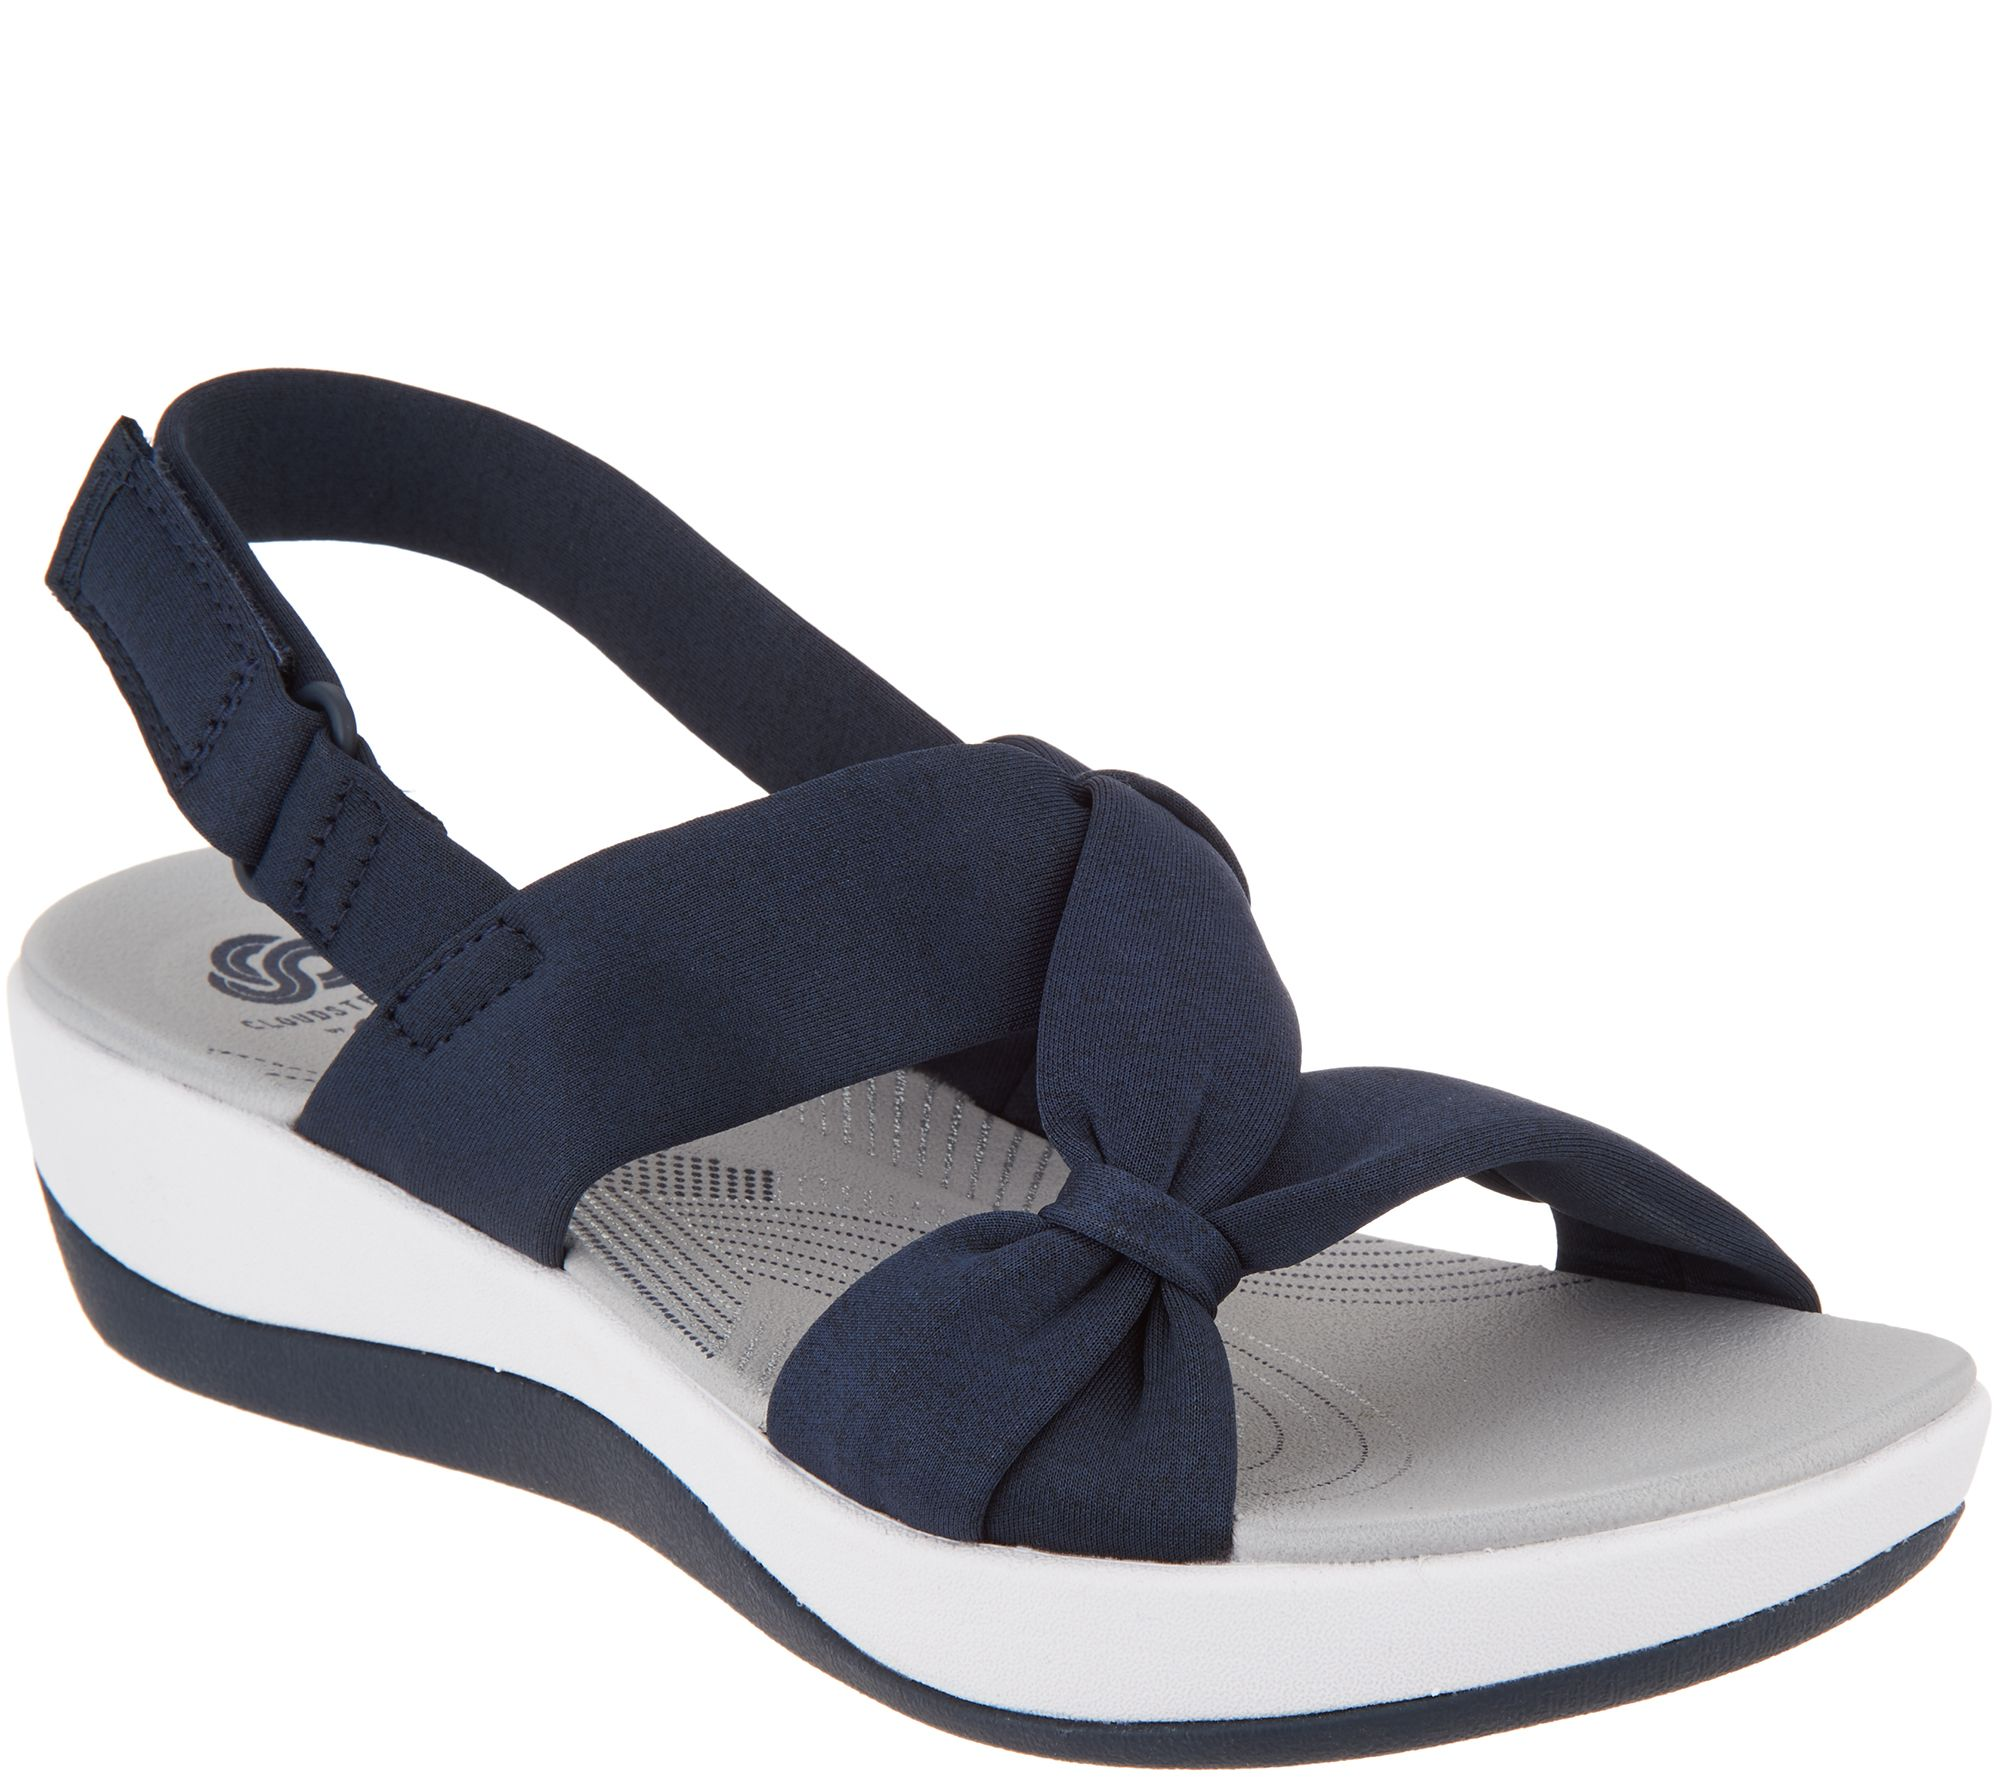 ac577f6ed10 CLOUDSTEPPERS by Clarks Sport Sandals - Arla Primrose - Page 1 — QVC.com